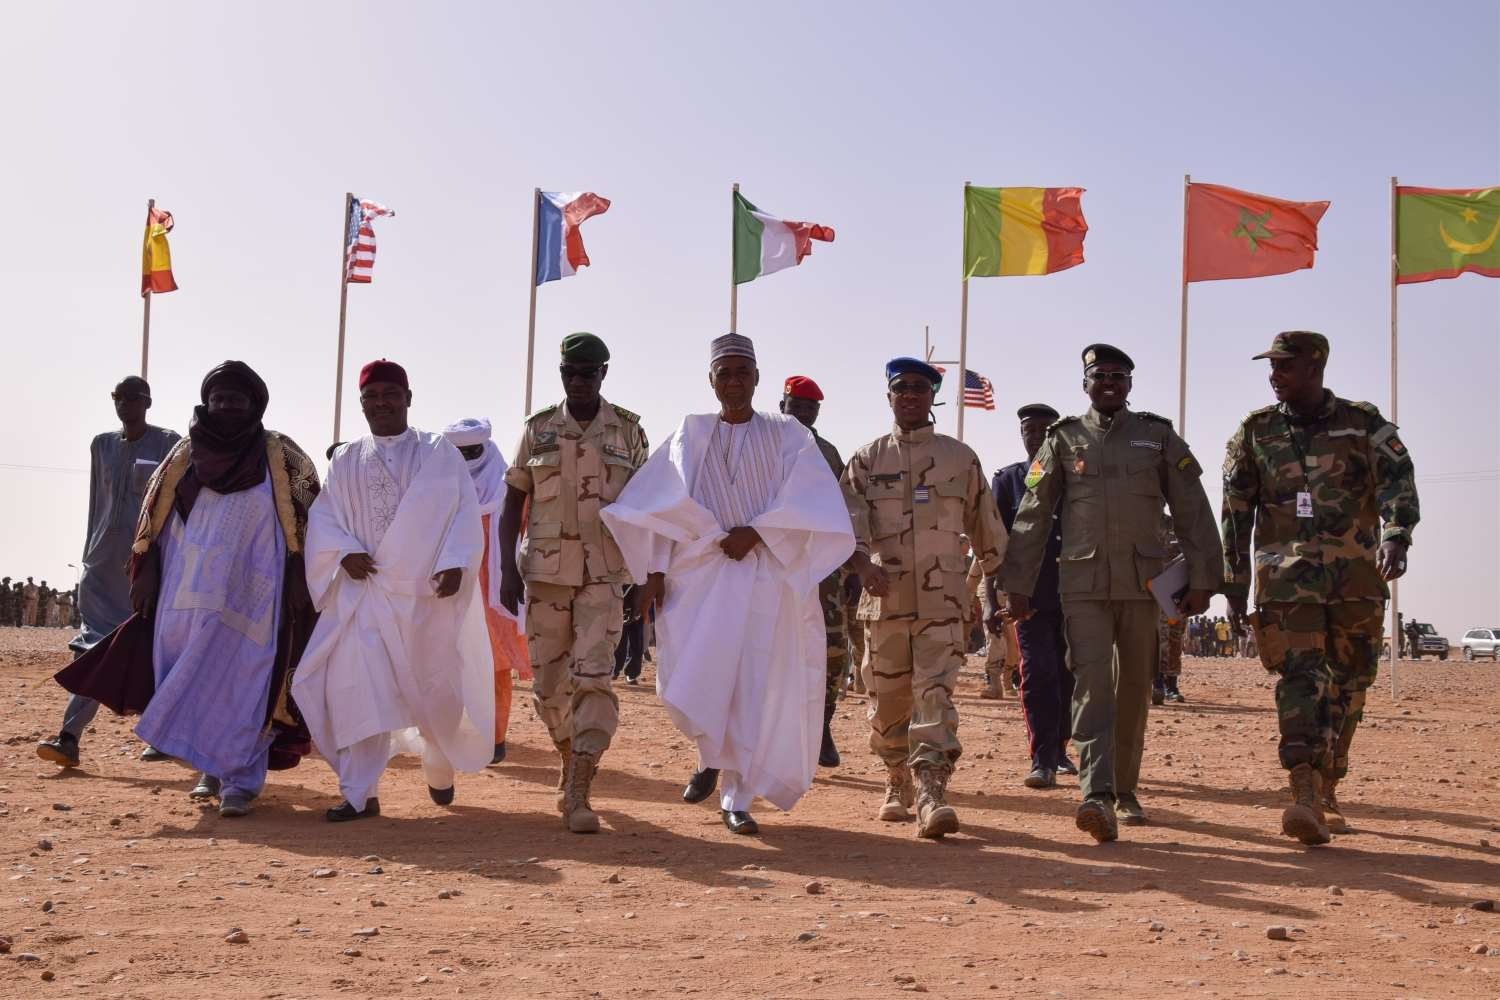 Security force capacity and professionalism in the Sahel